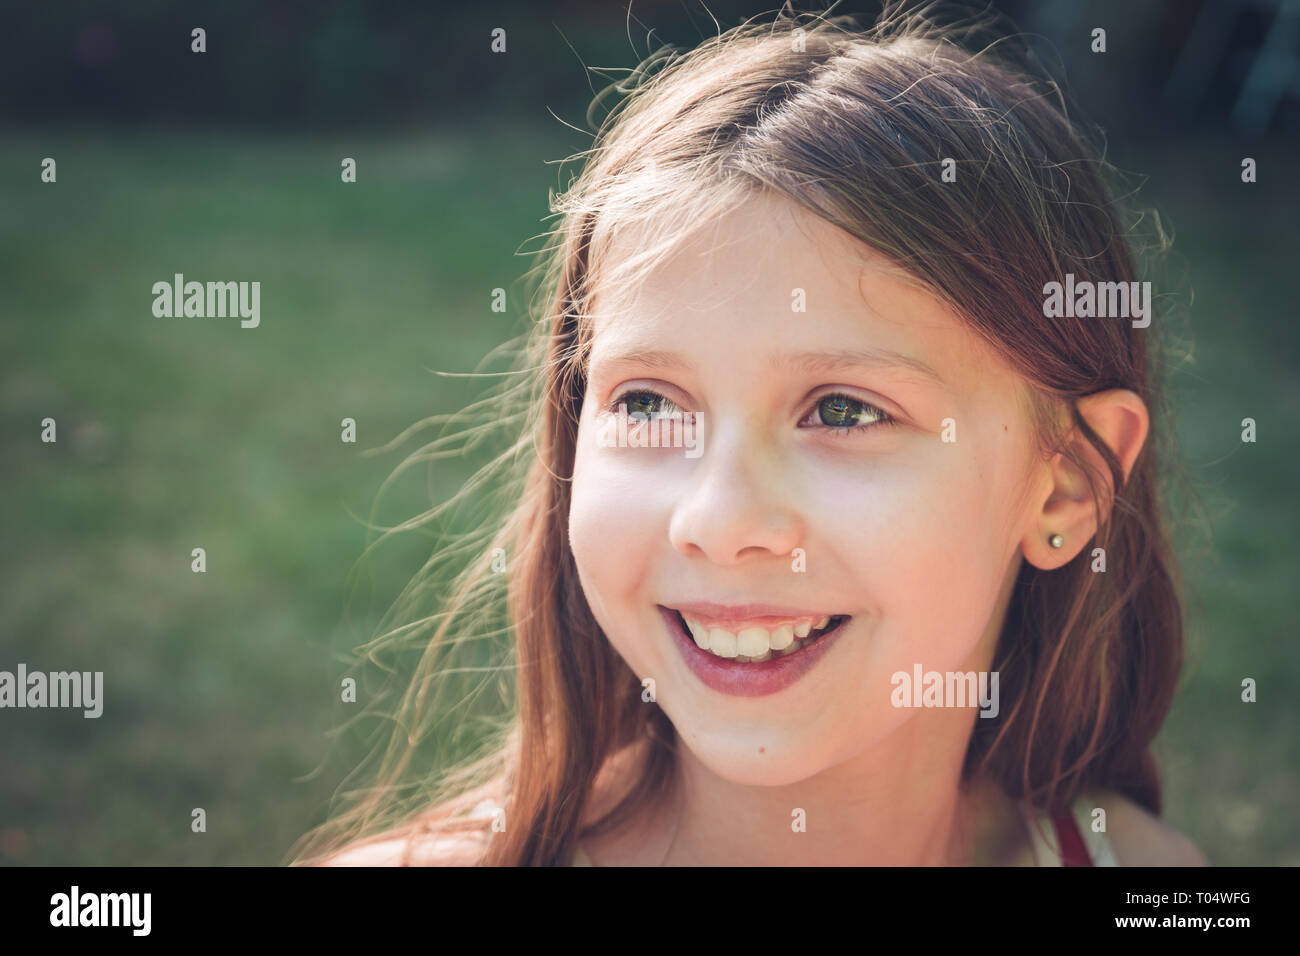 Relaxed outdoor portrait of white girl child smiling and looking happy, gazing to the side - Stock Image